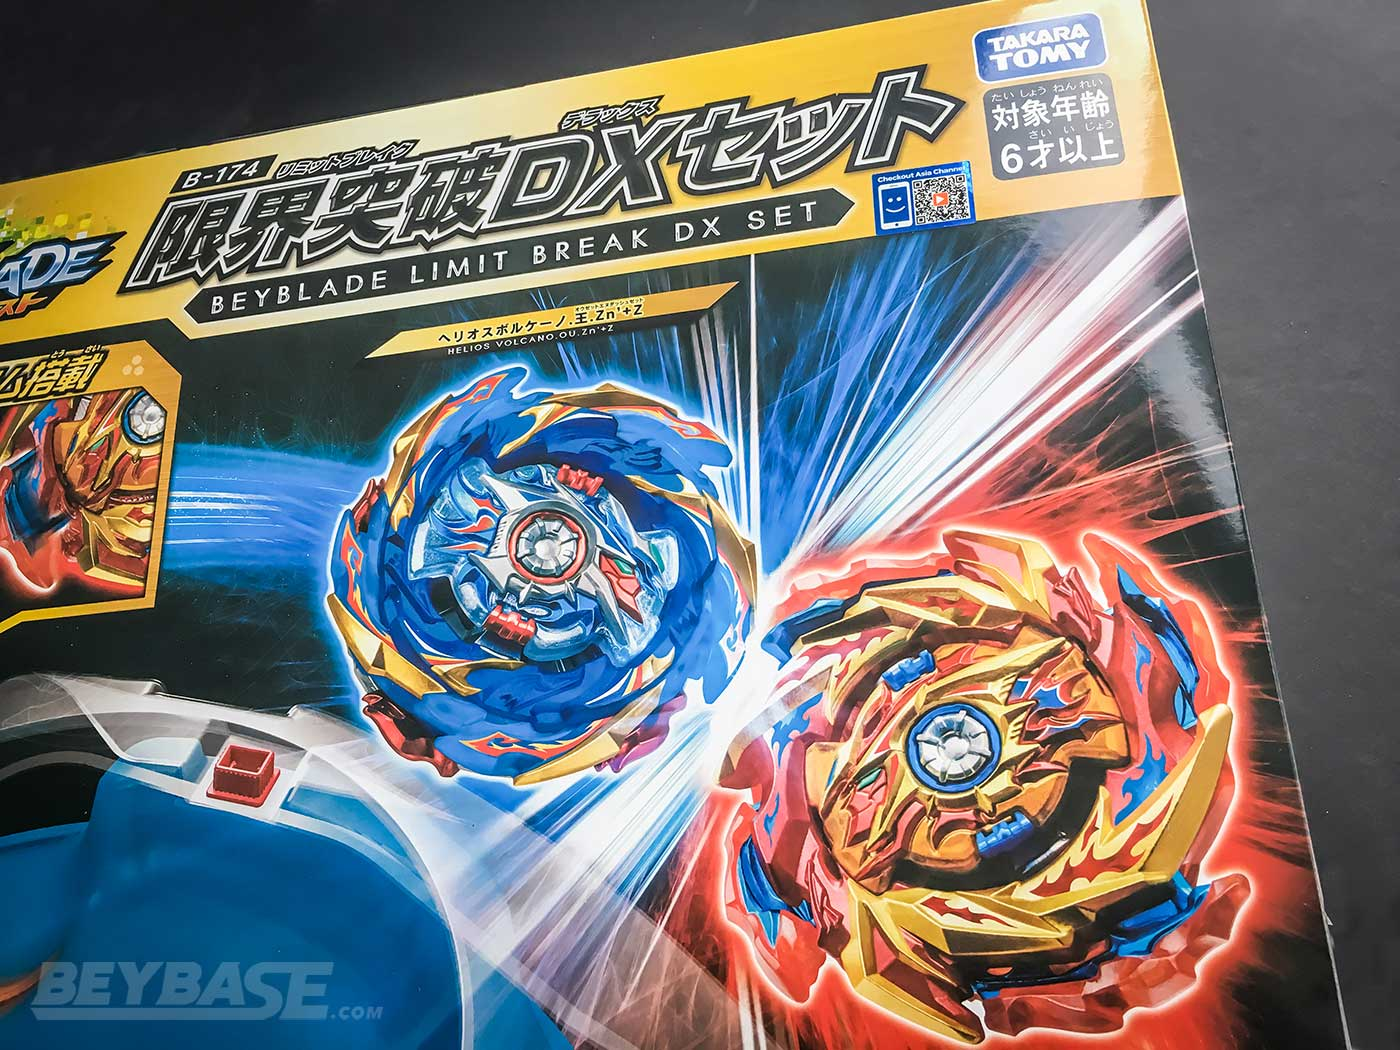 b-174 beyblade limit break dx set box top right corner